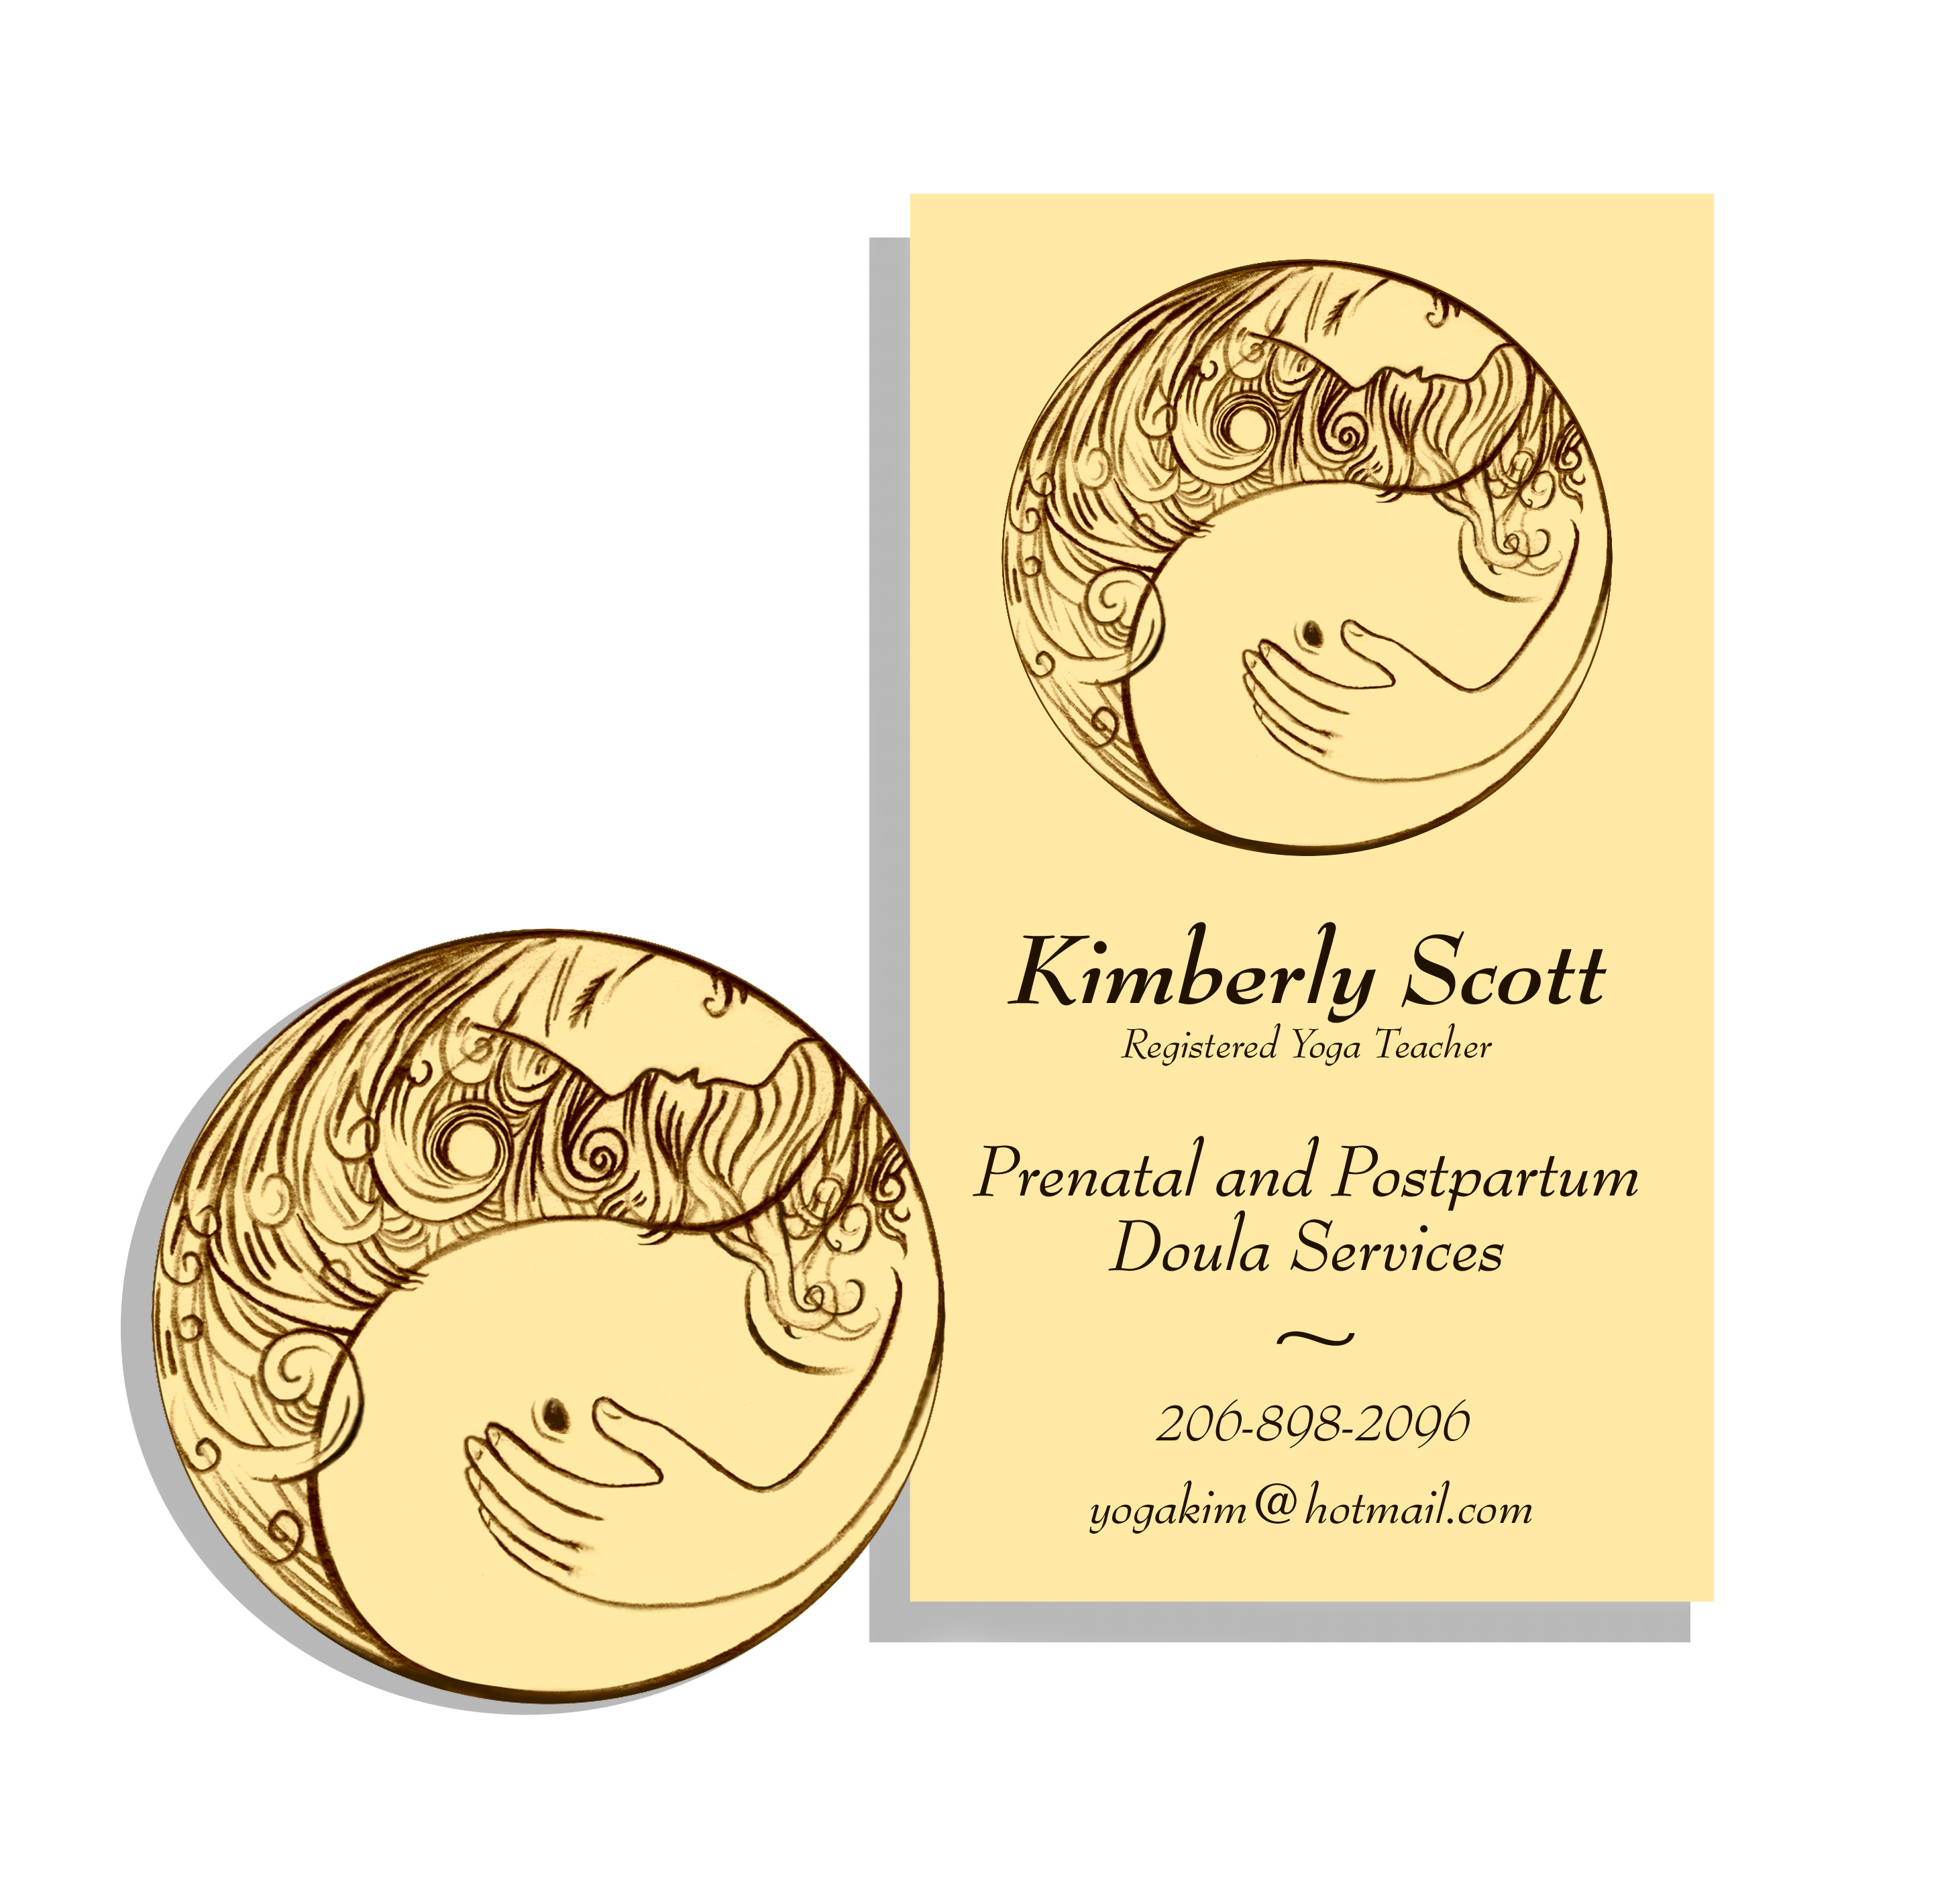 Kimberly scott business card logo design wonder parade kimberly scott business card and logo magicingreecefo Image collections